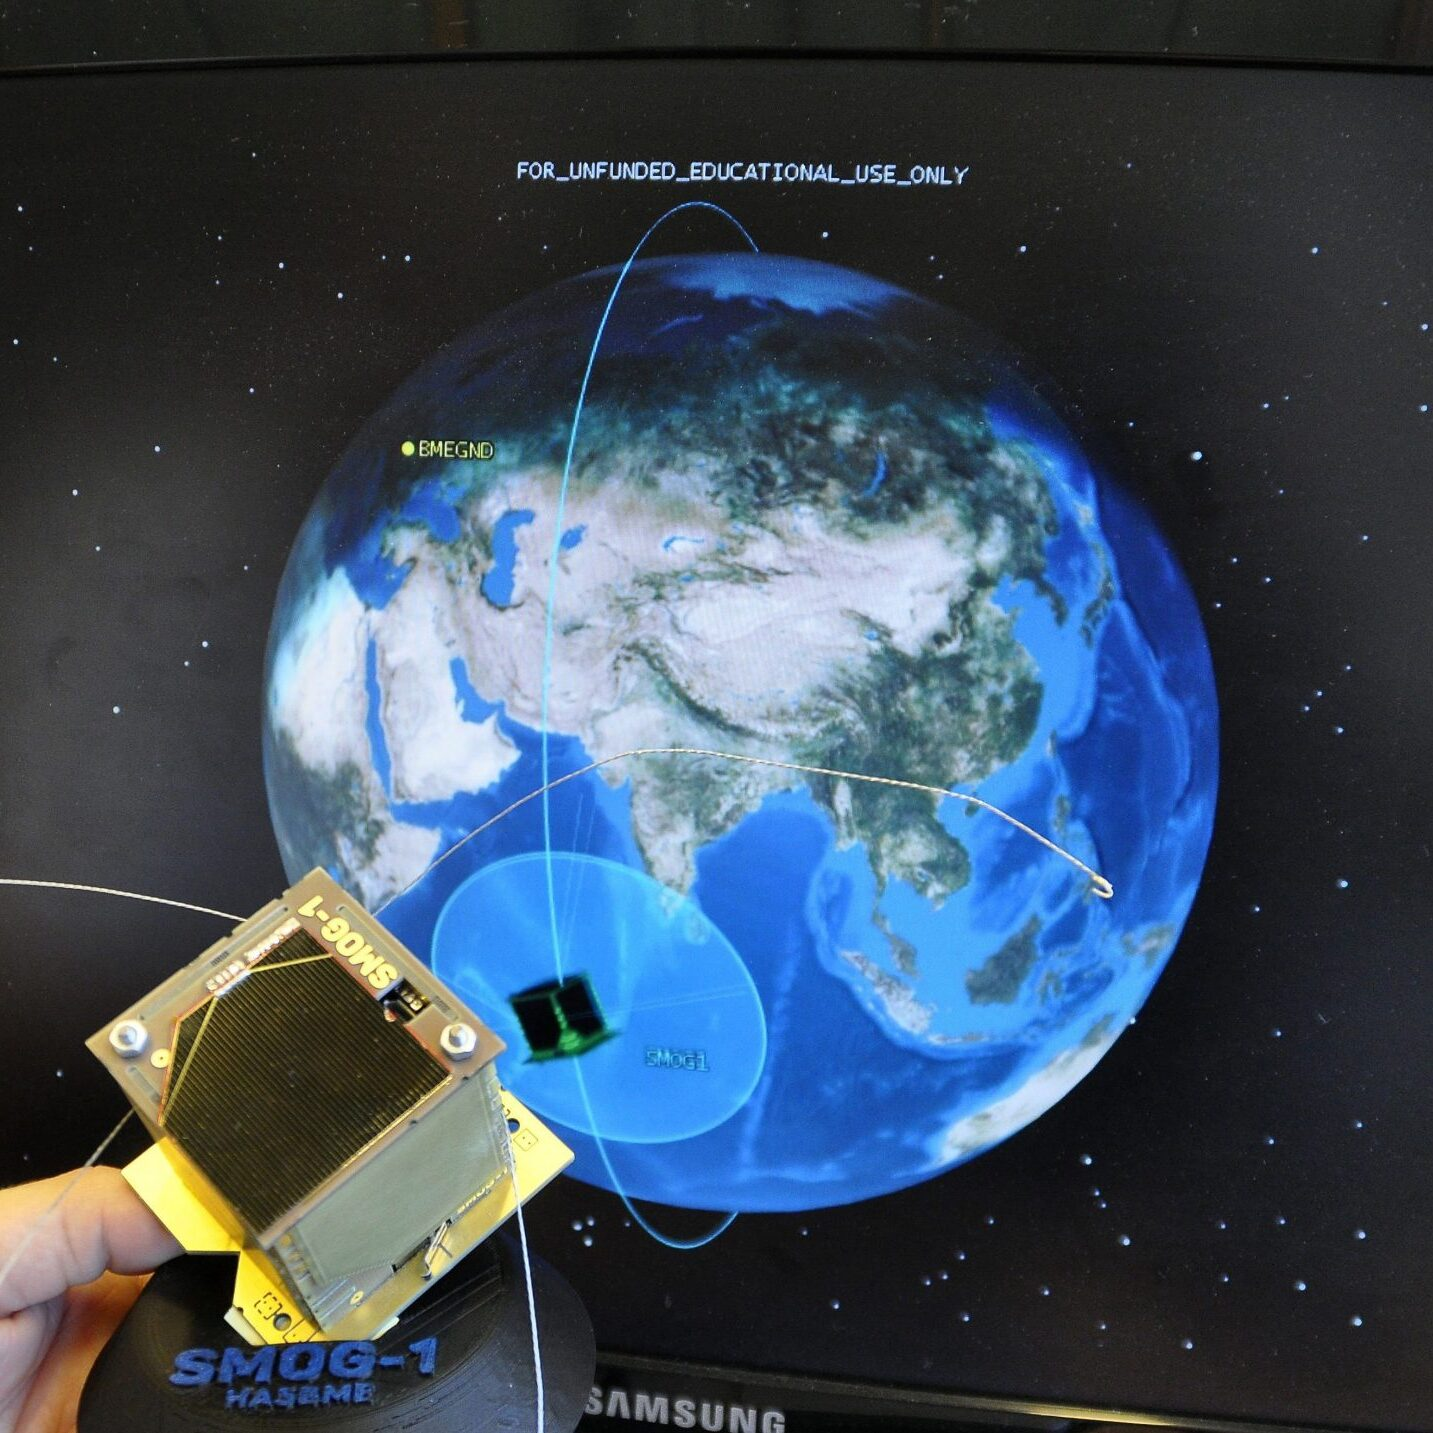 The fourth Hungarian small satellite, SMOG-1 has been launched